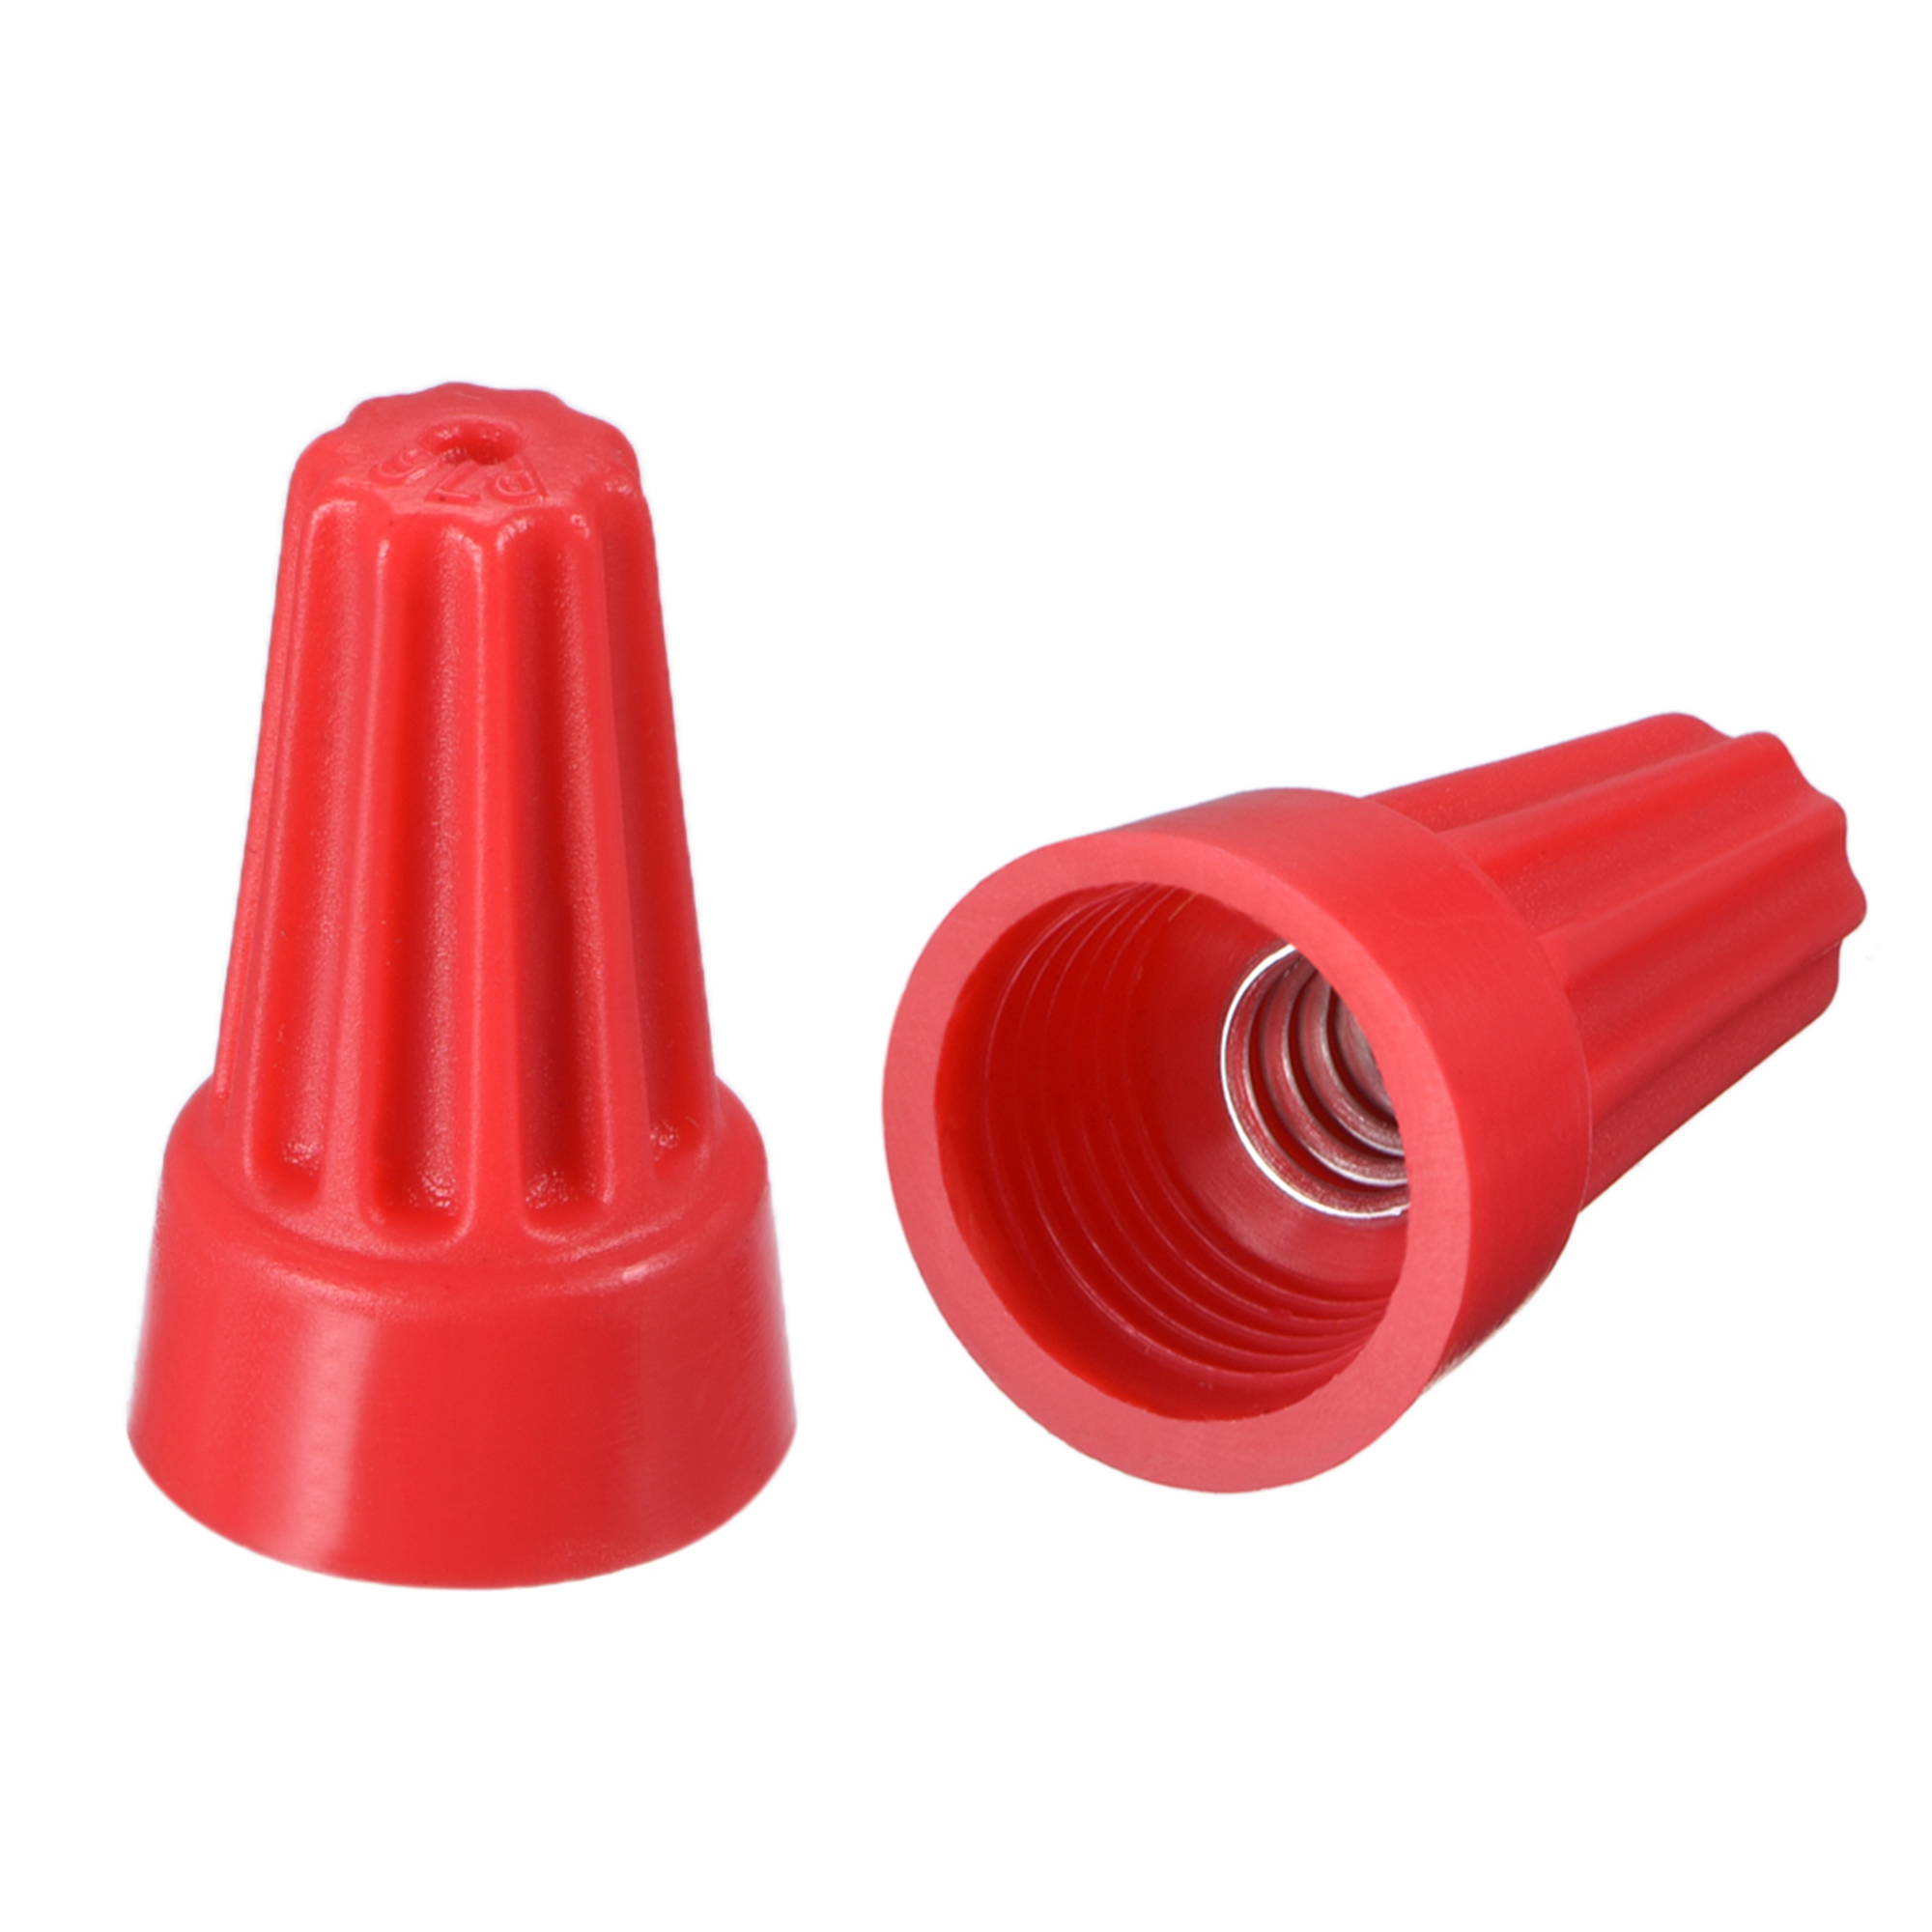 small resolution of wire nuts electrical connectors twist nut caps screw terminals red wire nut connections close up wire nut cover